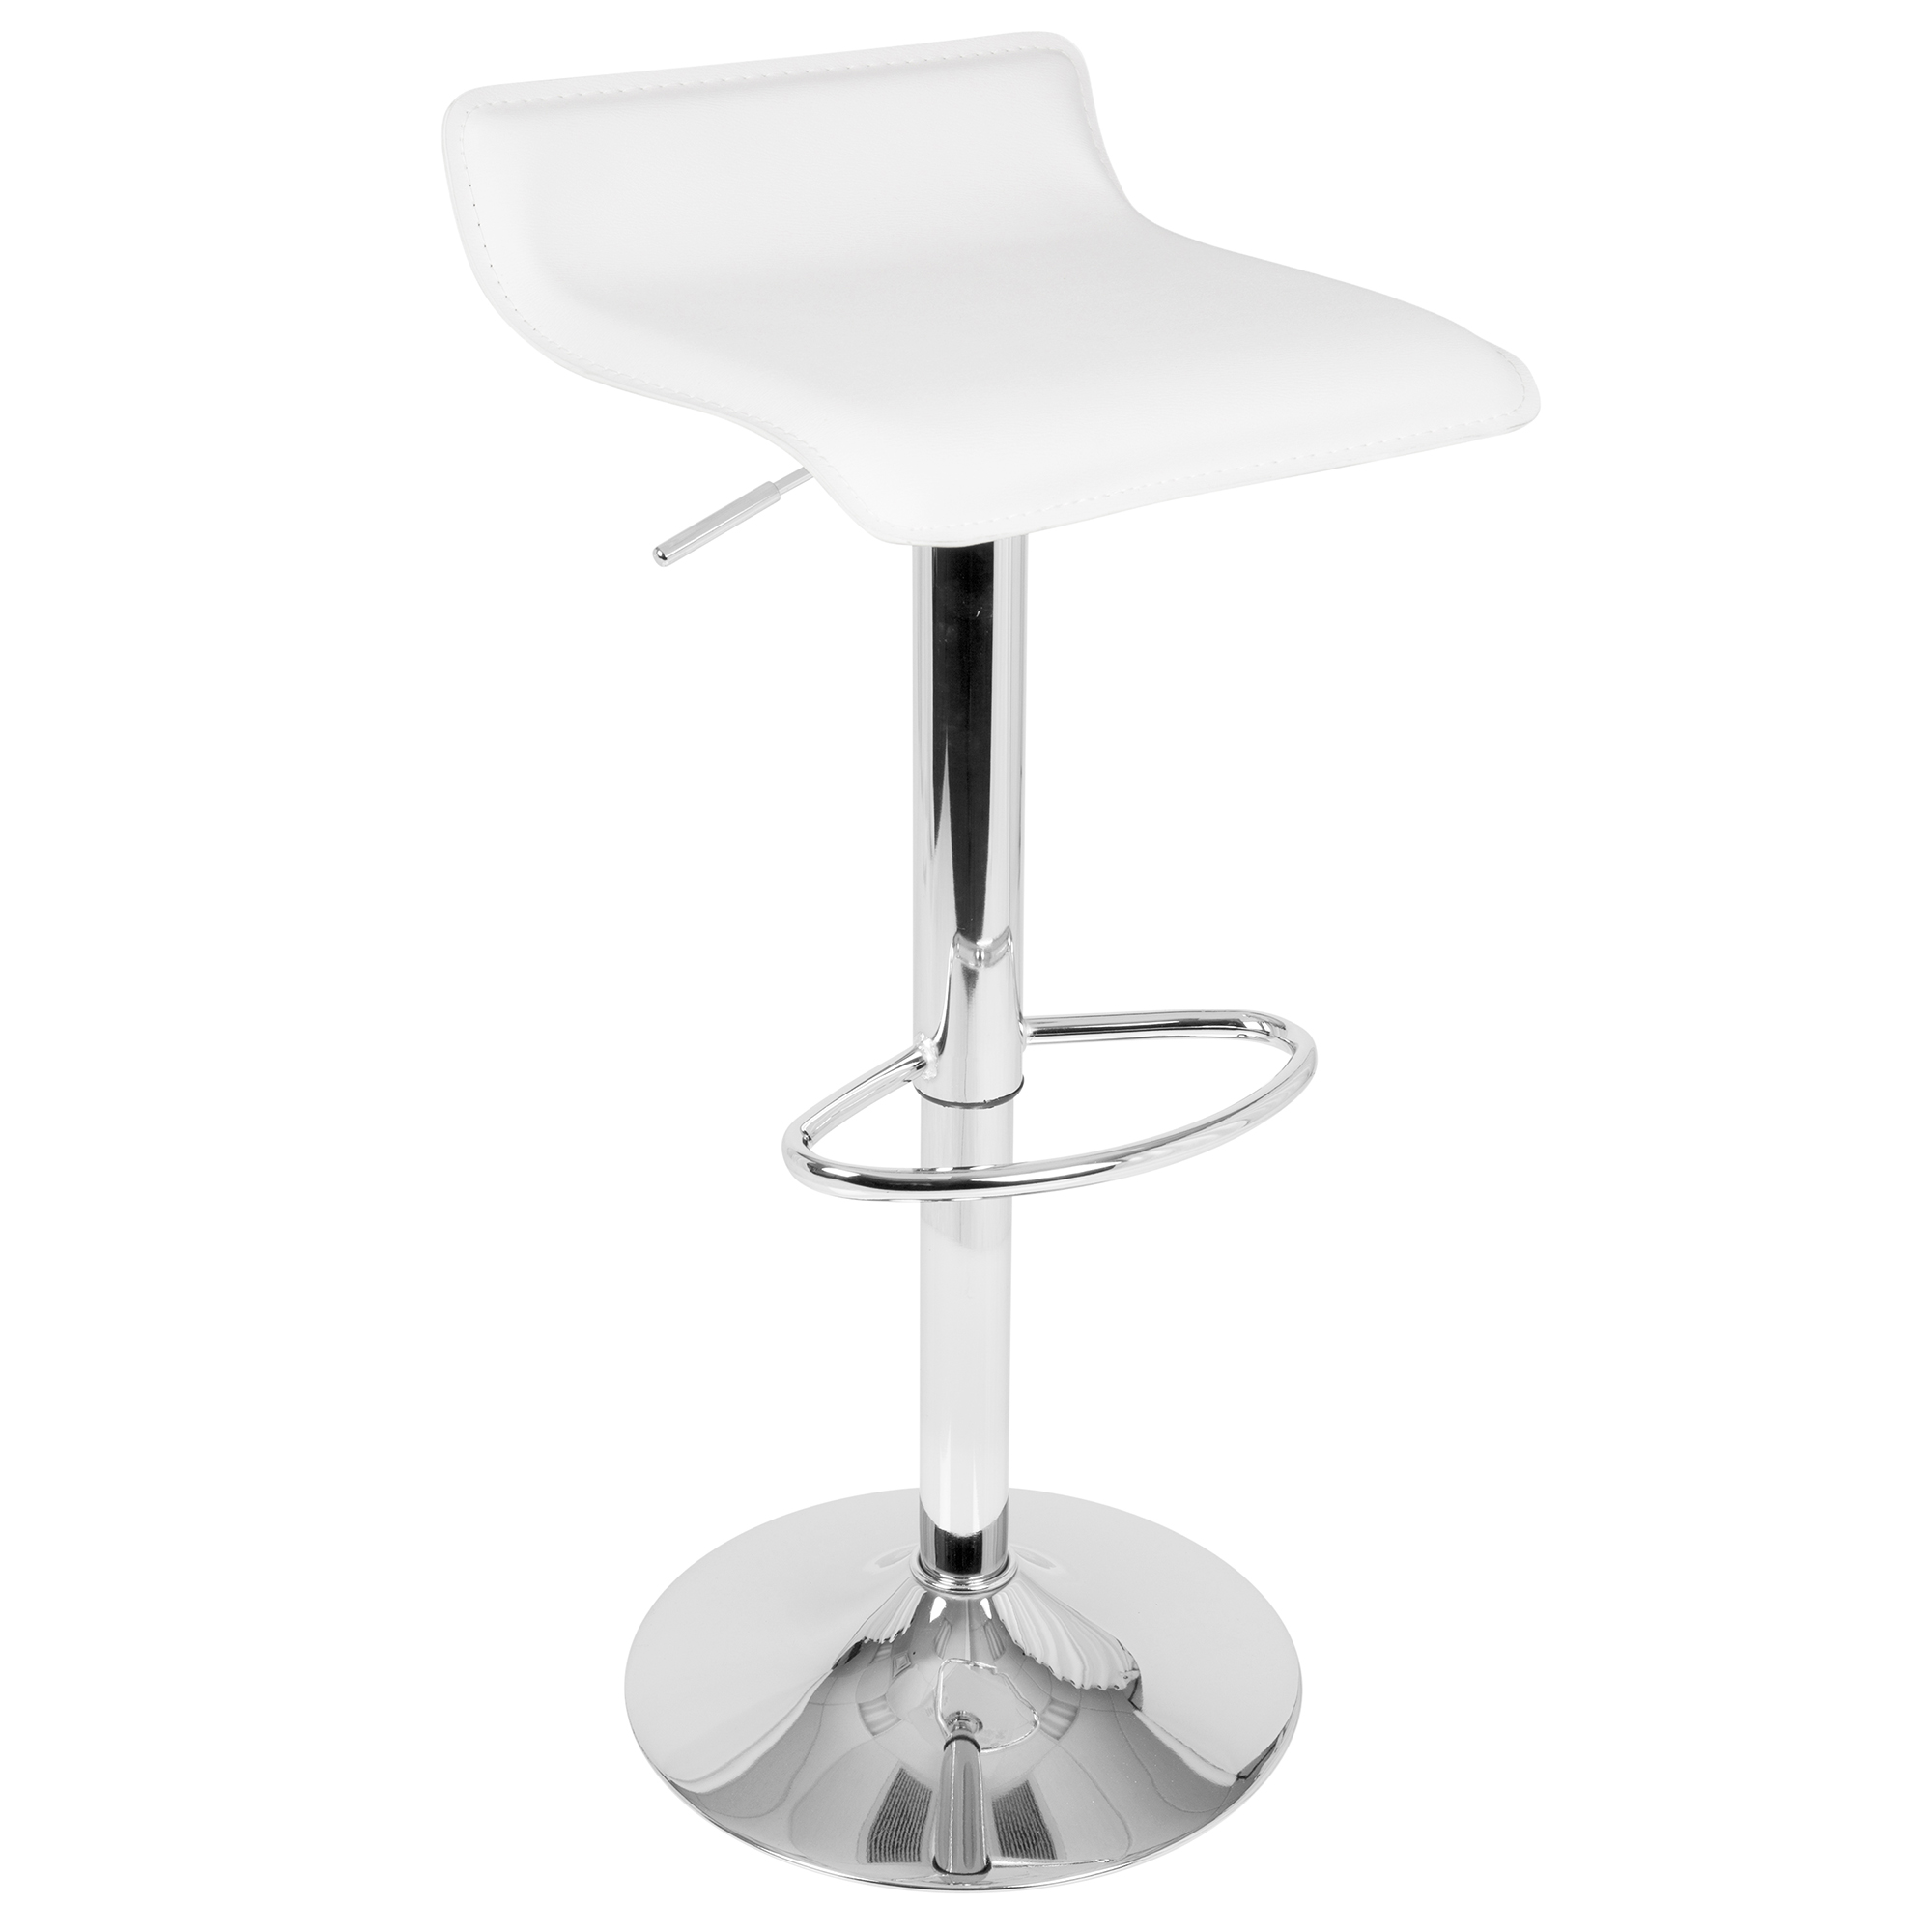 Ale Contemporary Adjustable Bar Stool in White Faux Leather by Lumisource Set of 2 by LumiSource